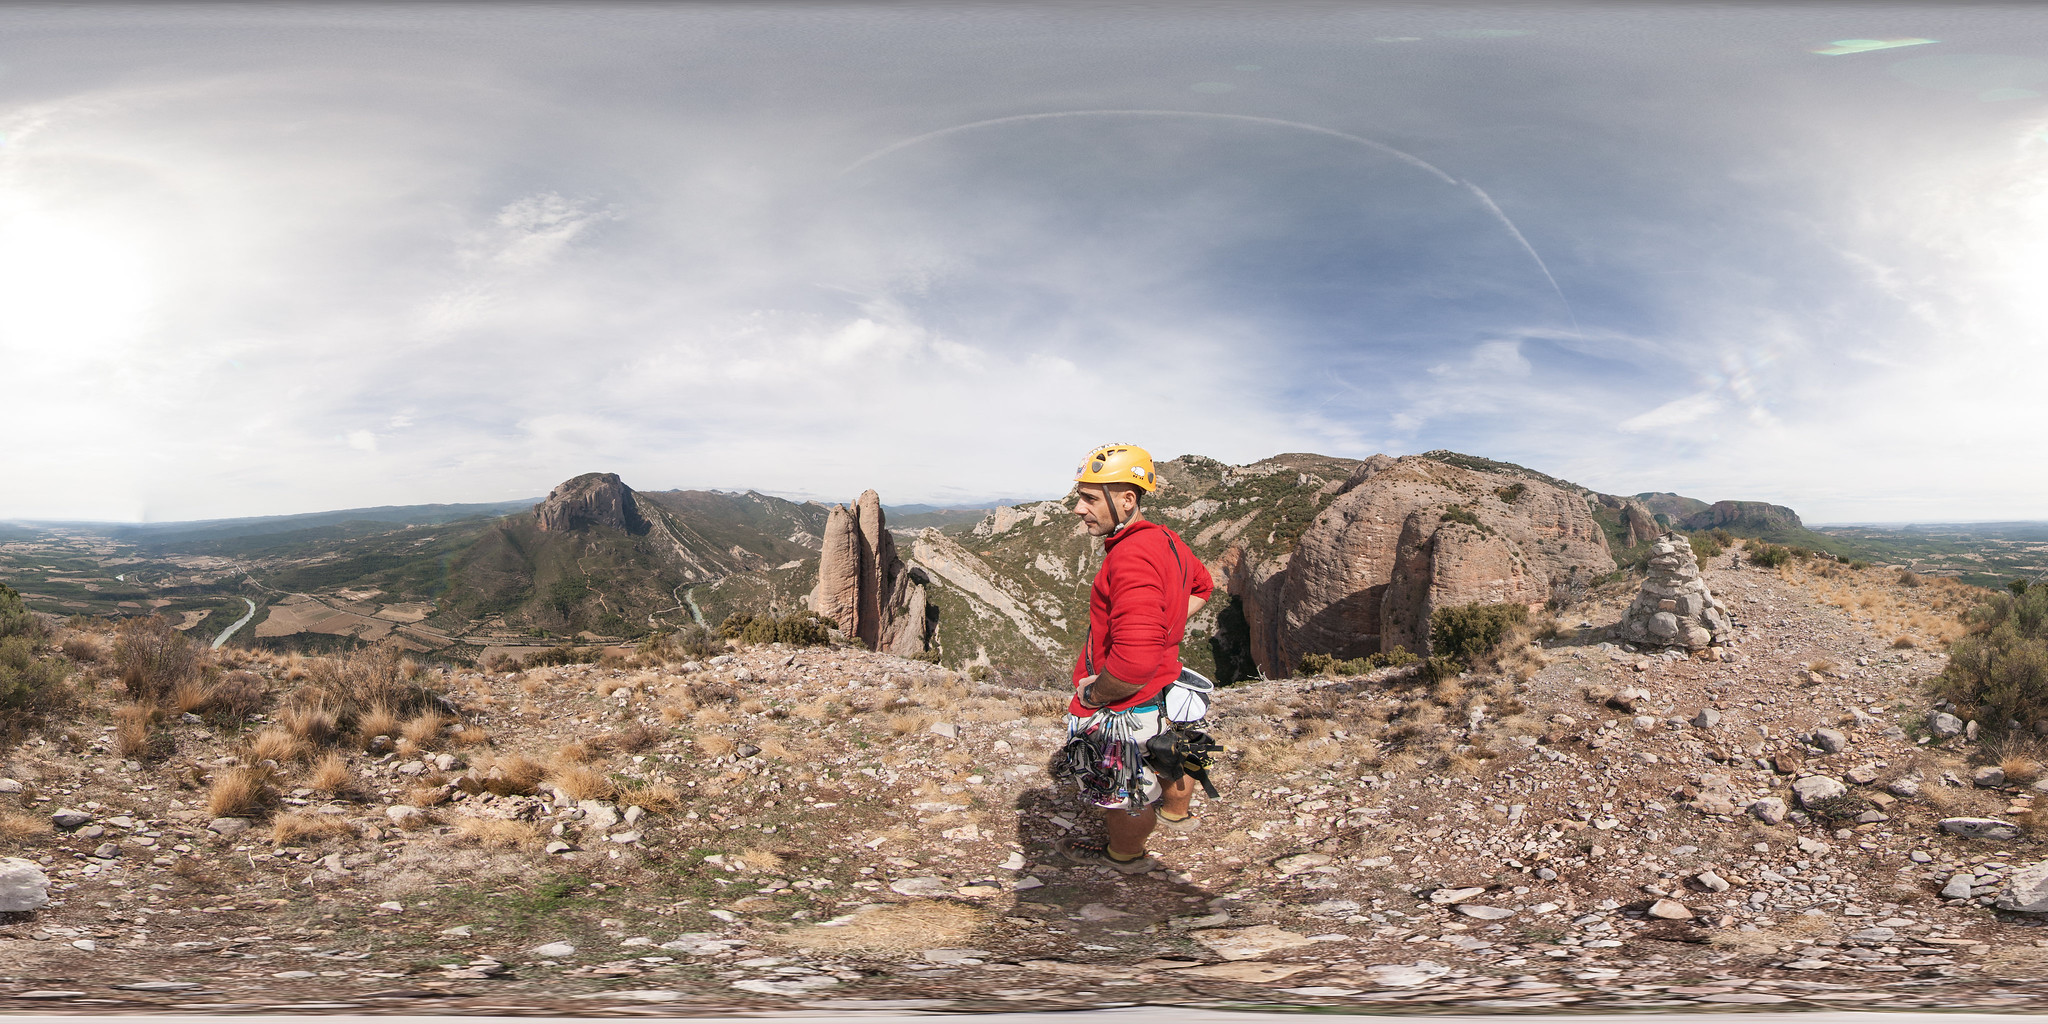 from the top of the rammer (360x180º)